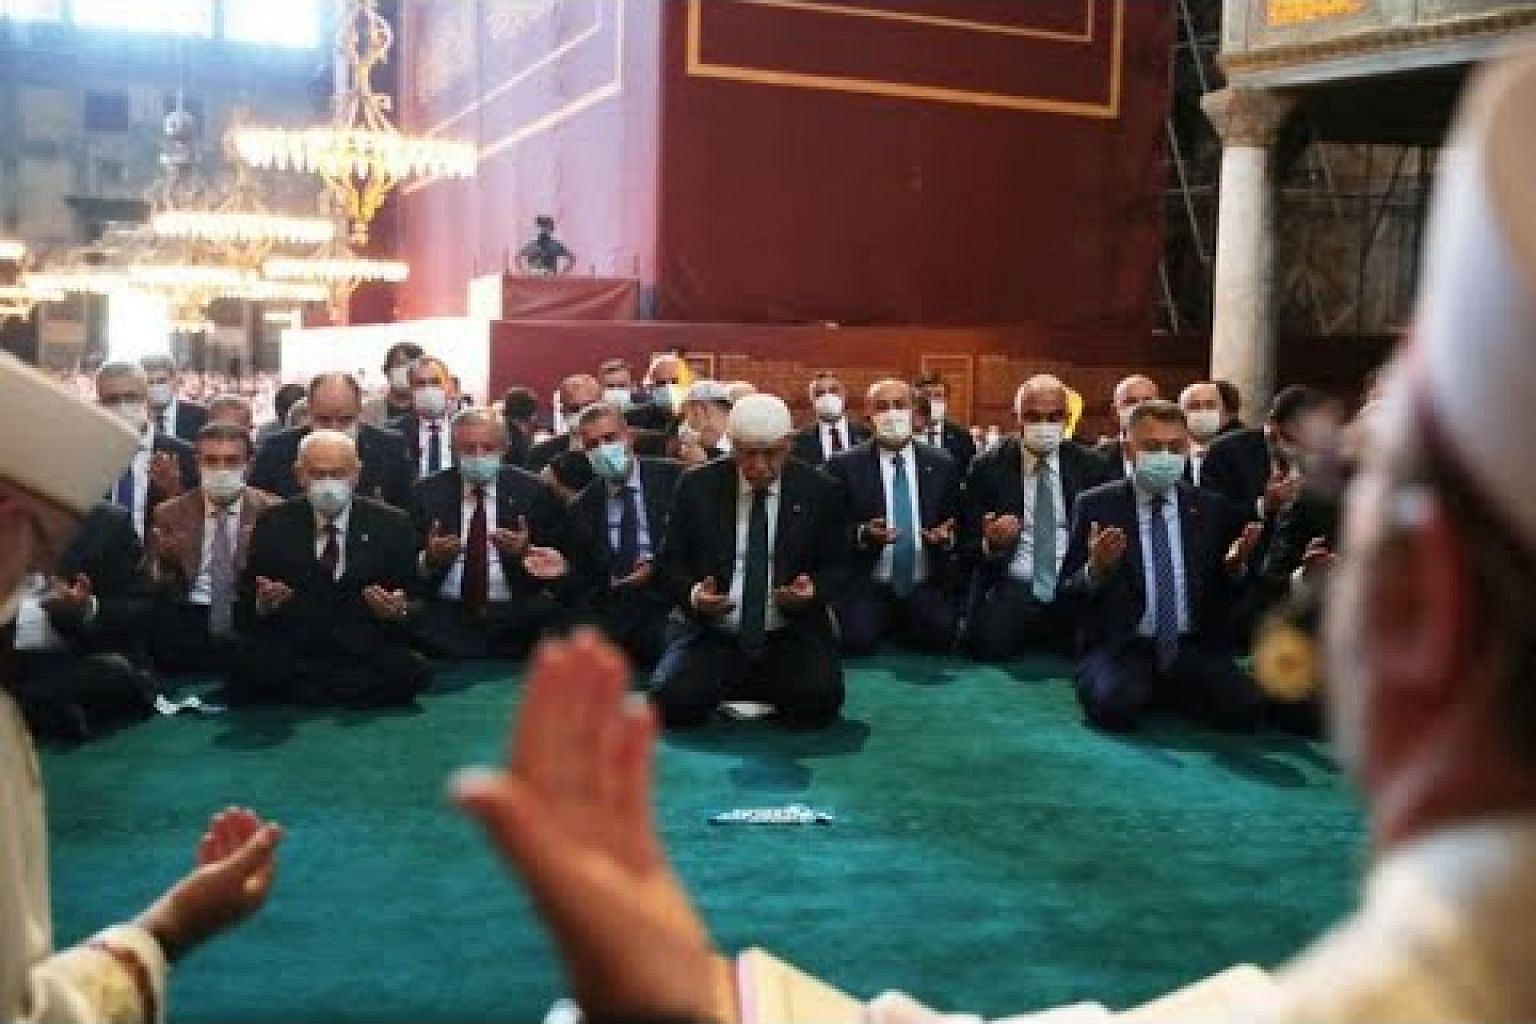 Erdogan joins thousands in first prayers at Hagia Sophia